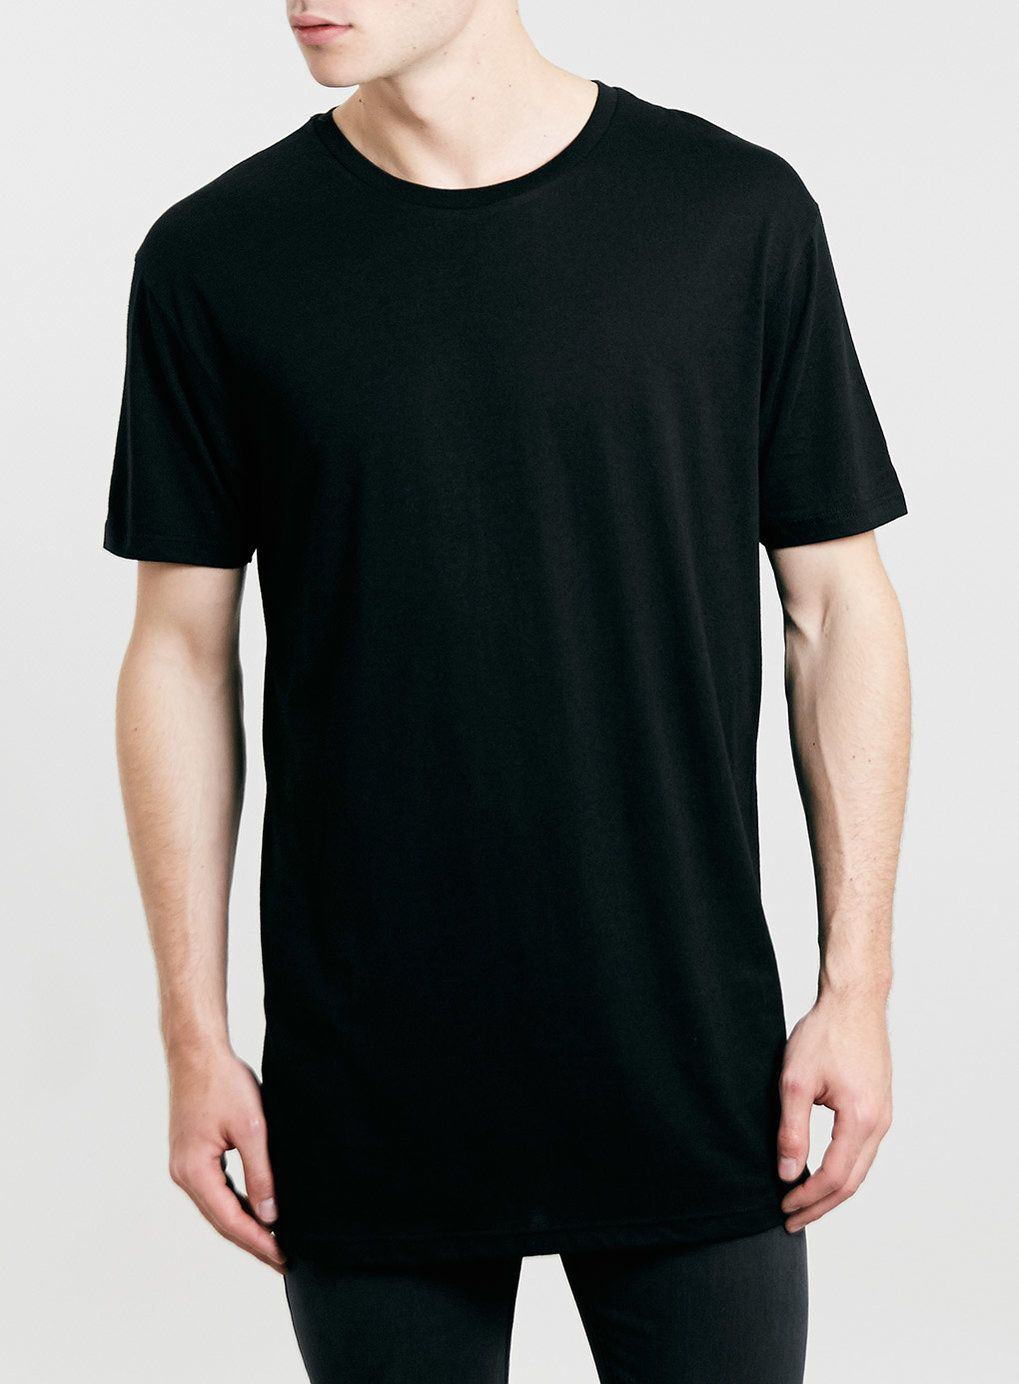 Black oversized long line t-shirt | Shirts, Products and T shirts